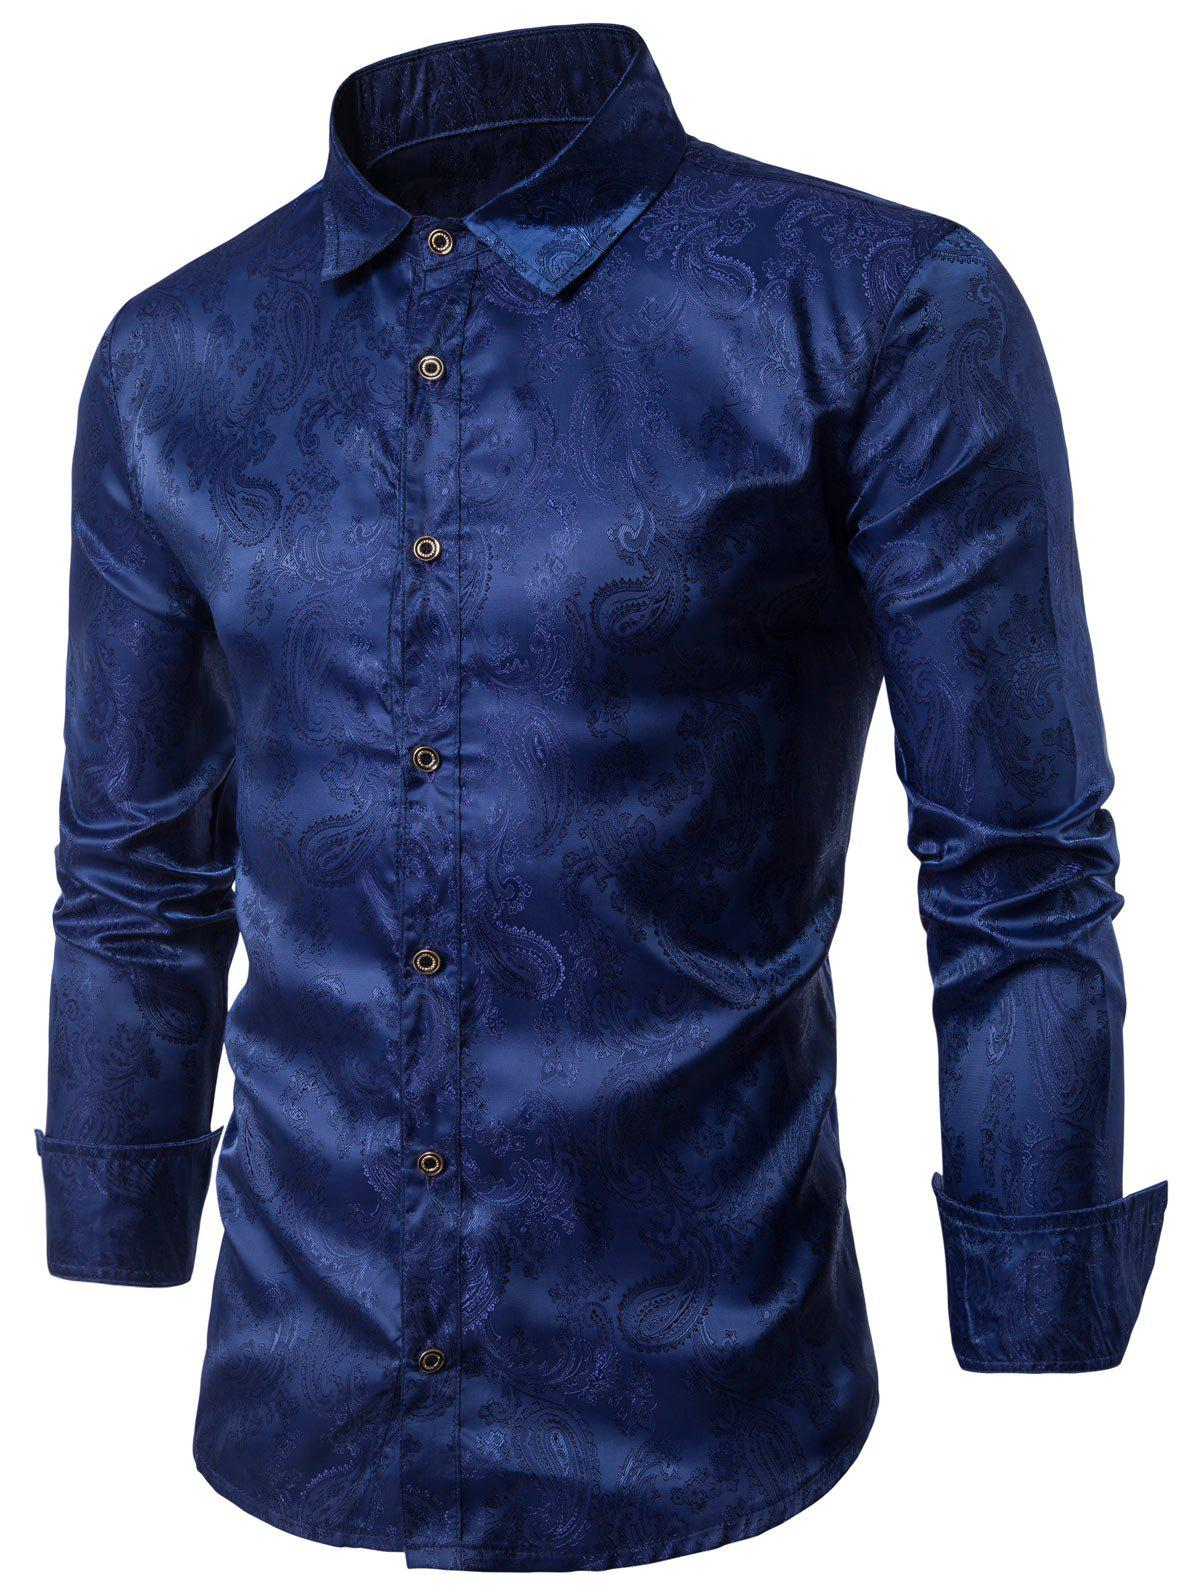 Store Casual Long Sleeve Paisley Vintage Shirt